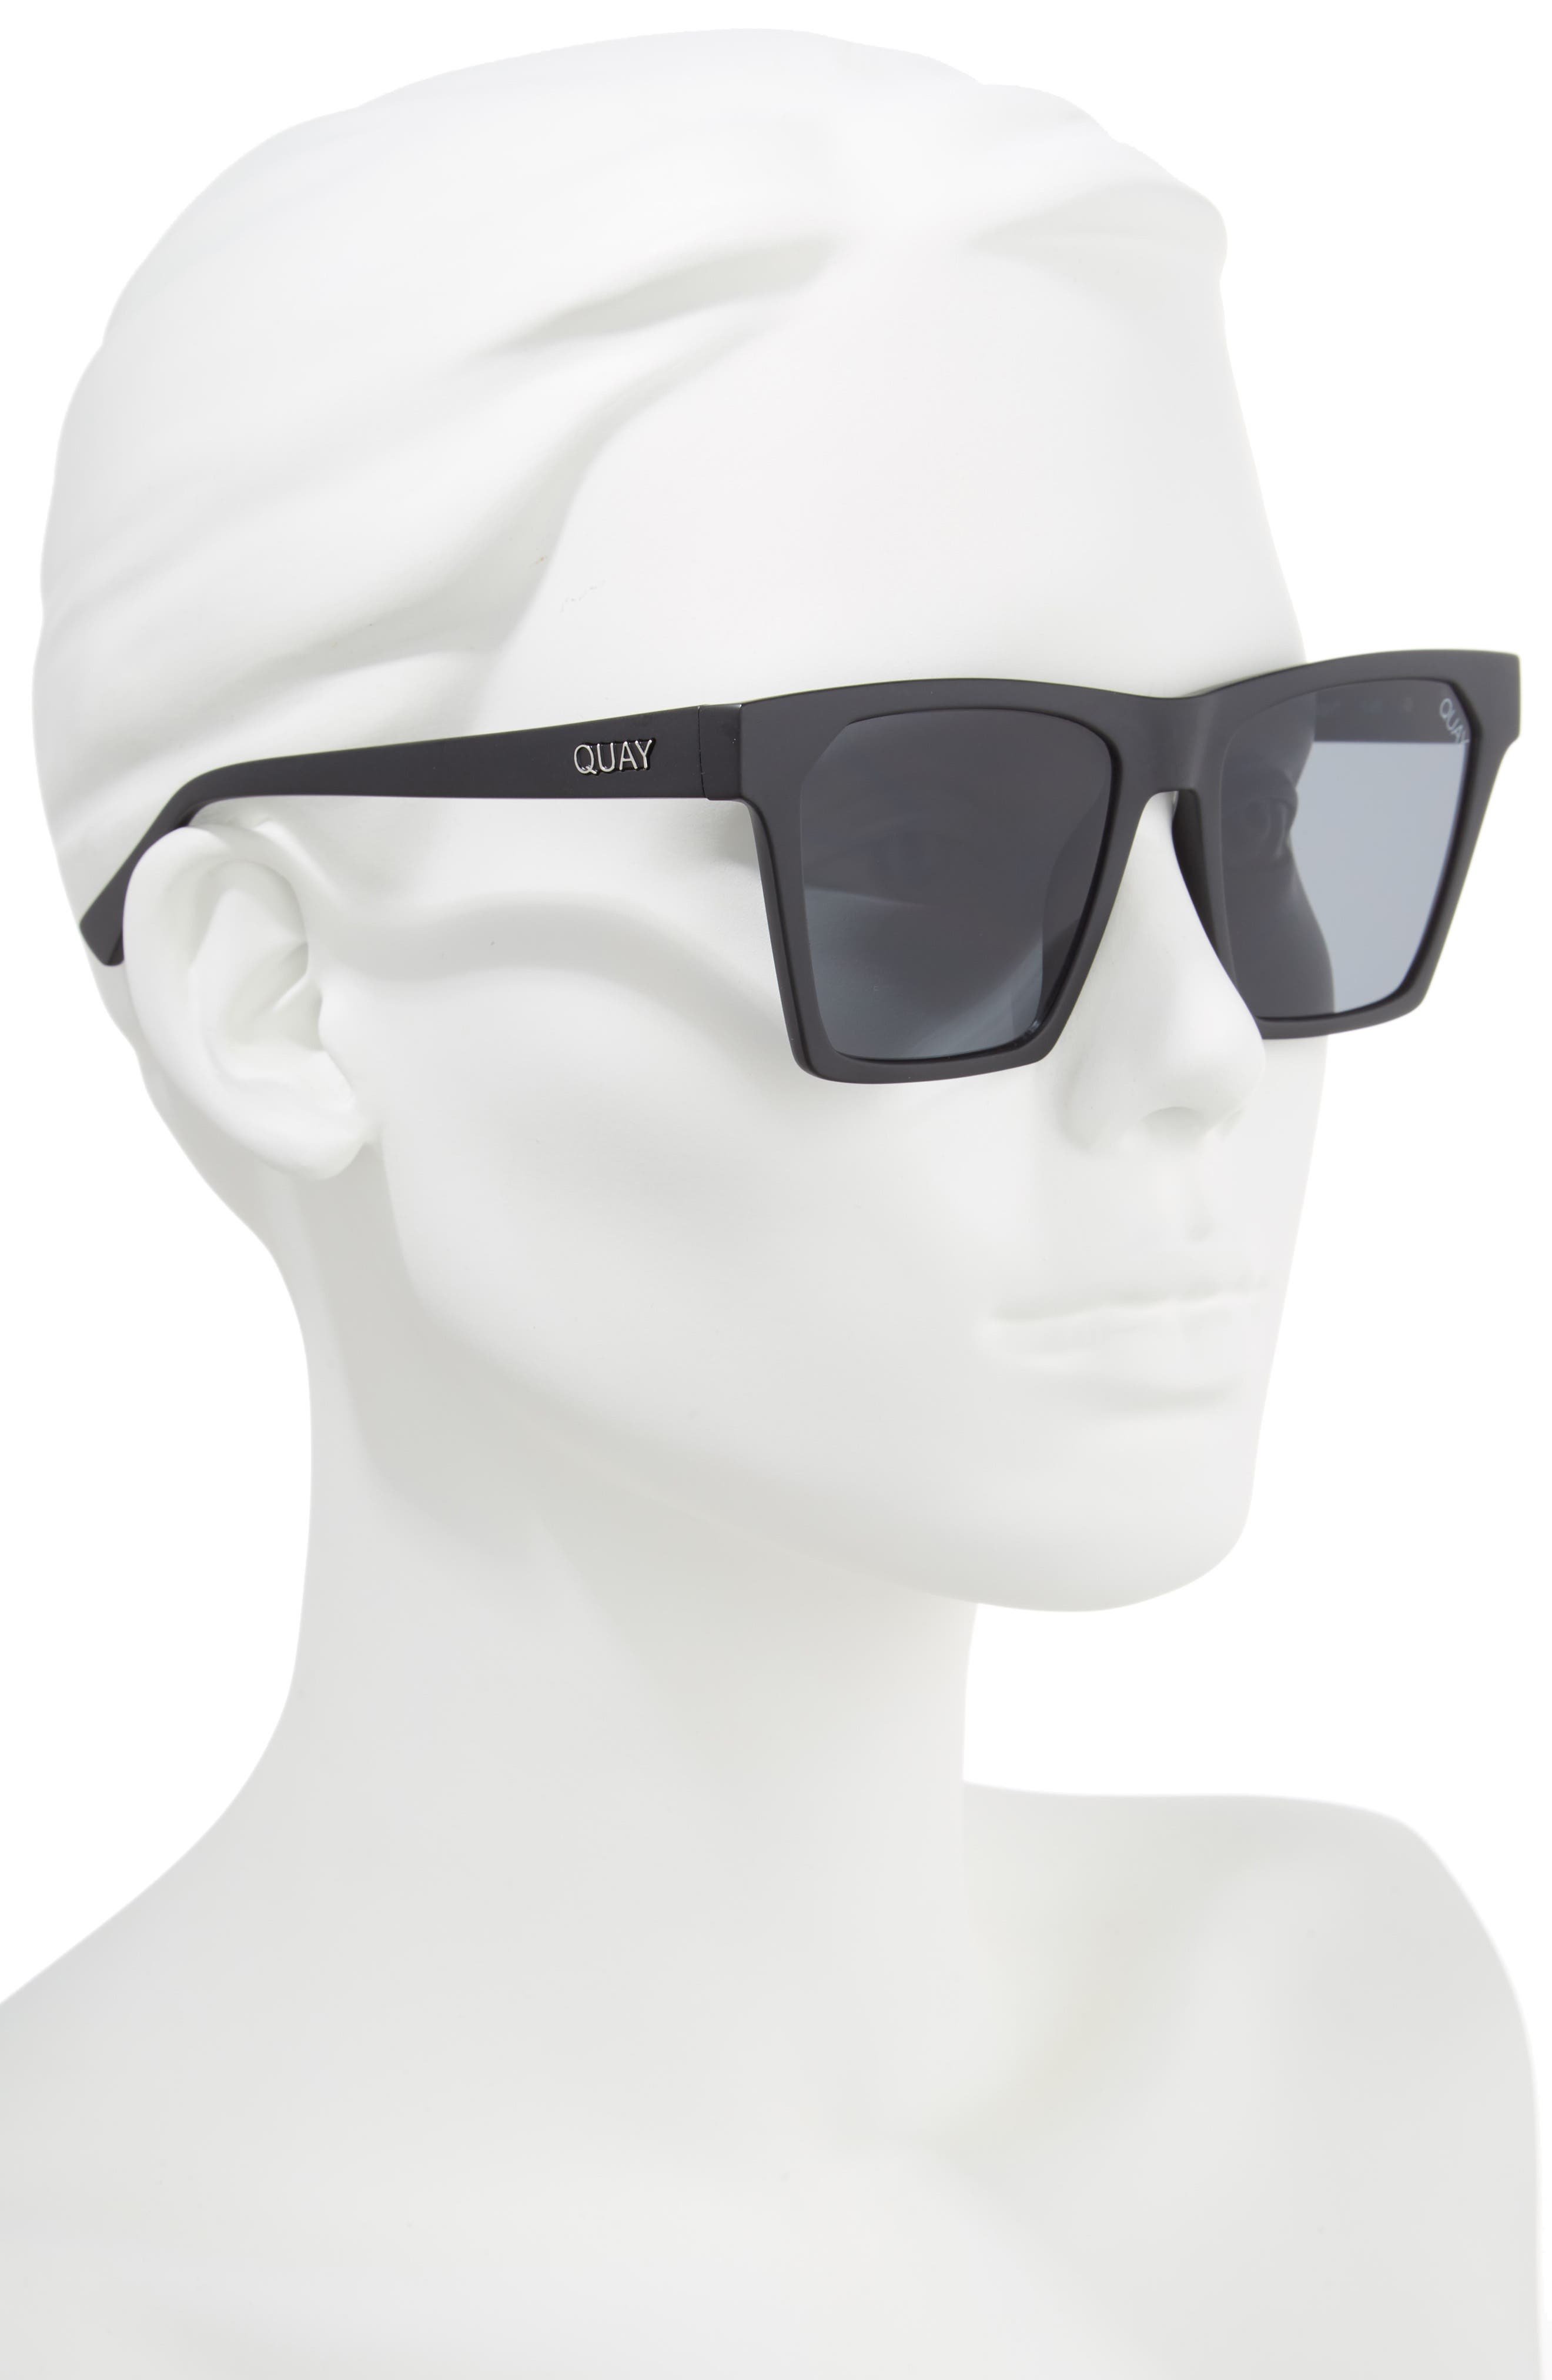 x Missguided Alright 55mm Square Sunglasses,                             Alternate thumbnail 2, color,                             001